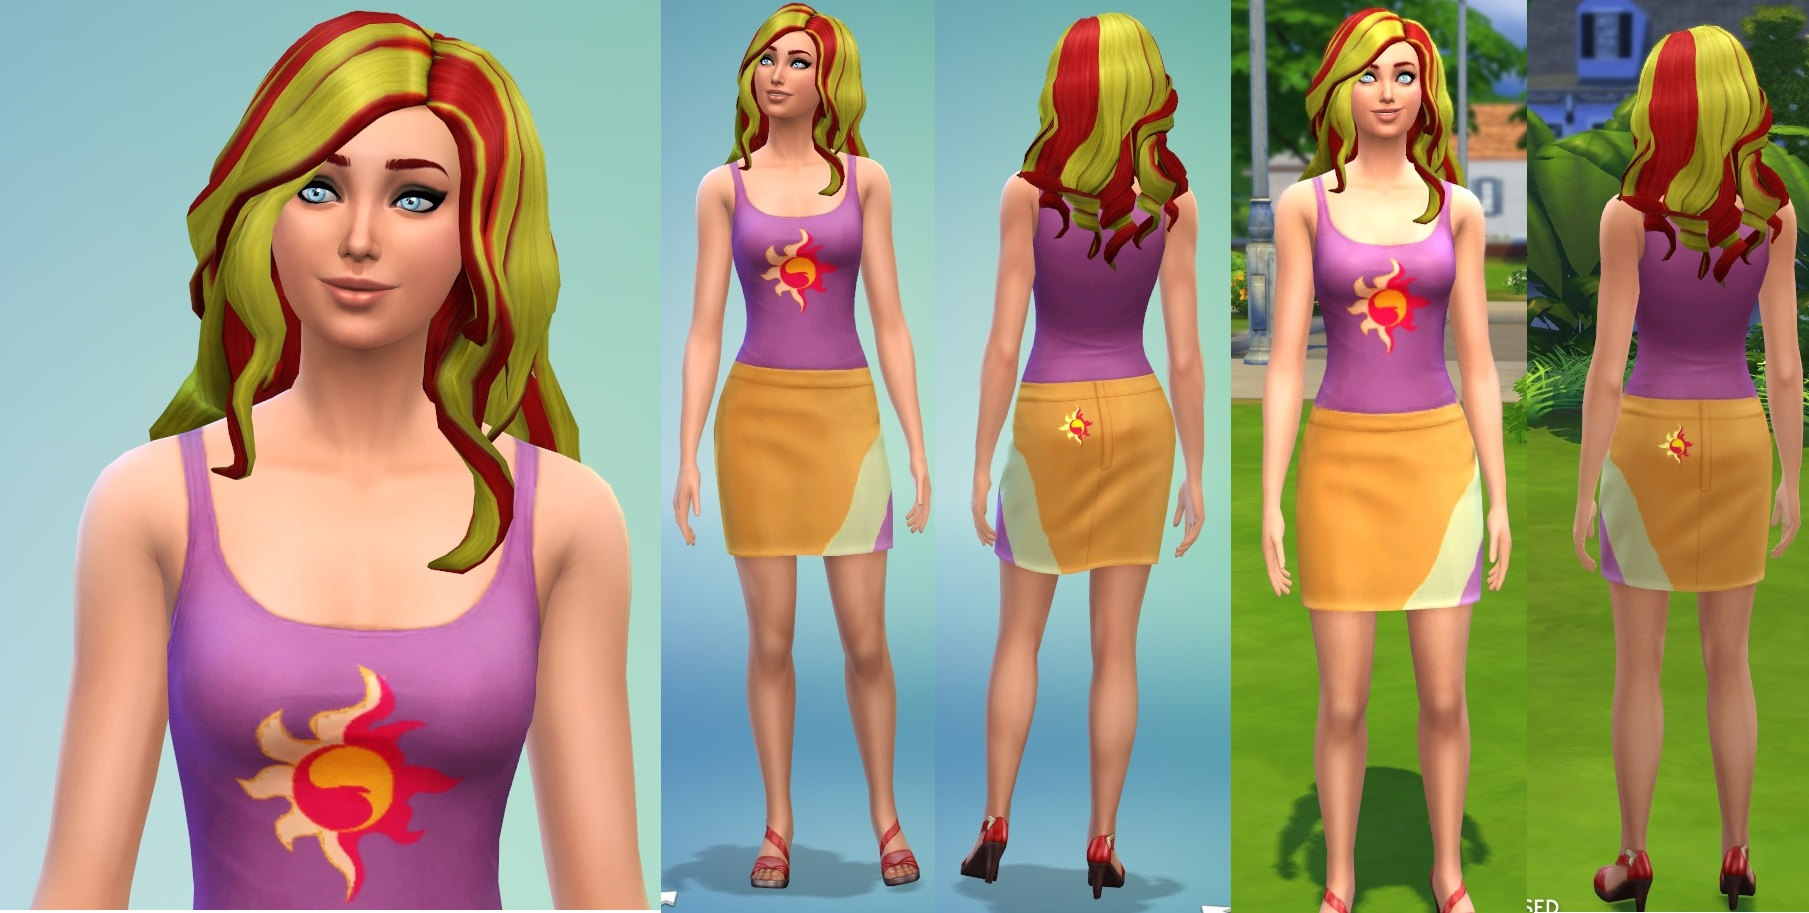 Mod The Sims Derpy Sunset Shimmer Trixie Zecora MLP